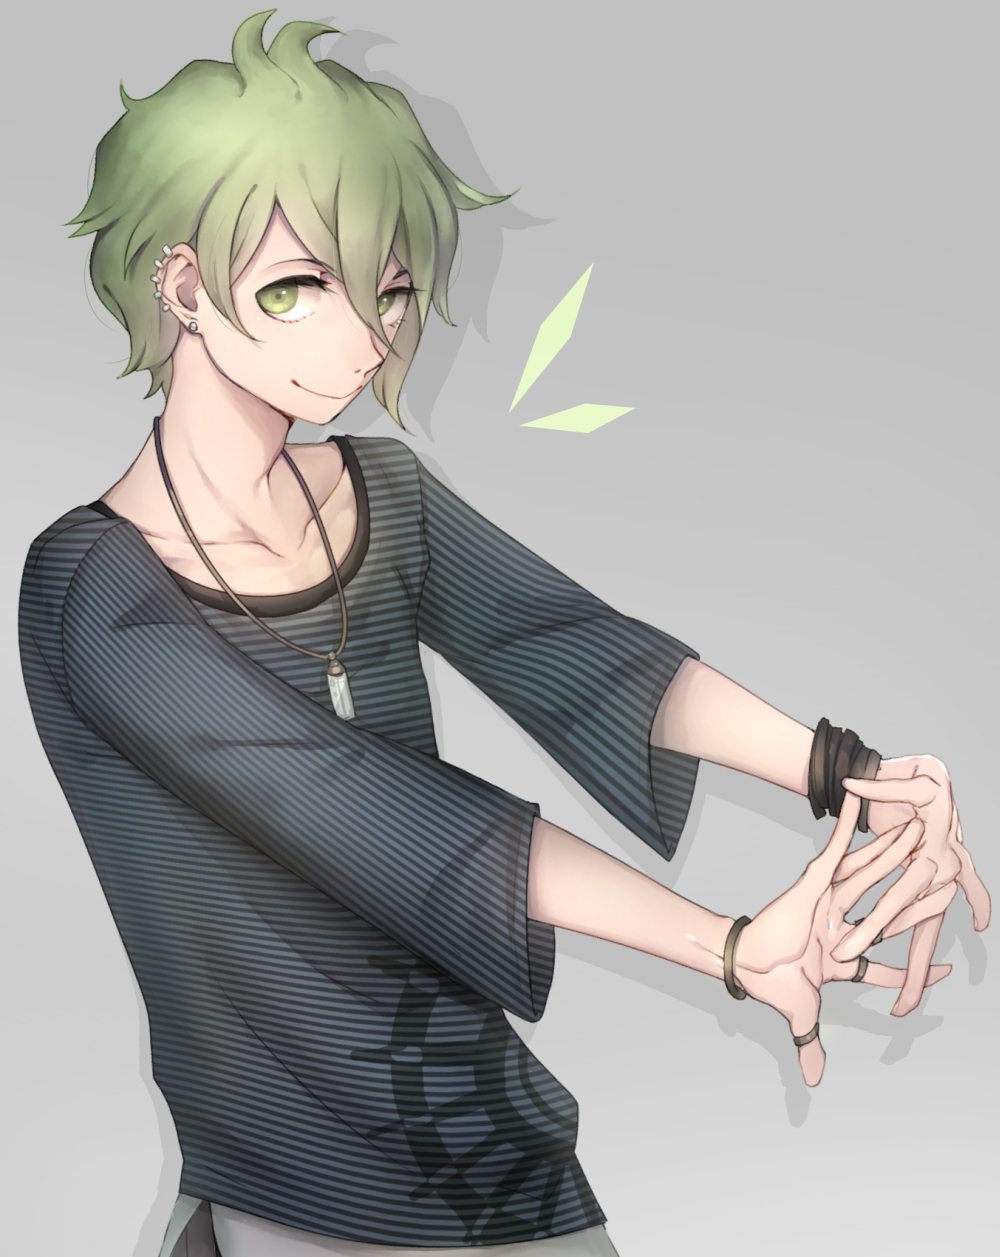 1boy bangle bracelet danganronpa earrings green_eyes green_hair grey_background highres jewelry looking_at_viewer necklace new_danganronpa_v3 paxio44 ring shirt simple_background smile striped striped_shirt